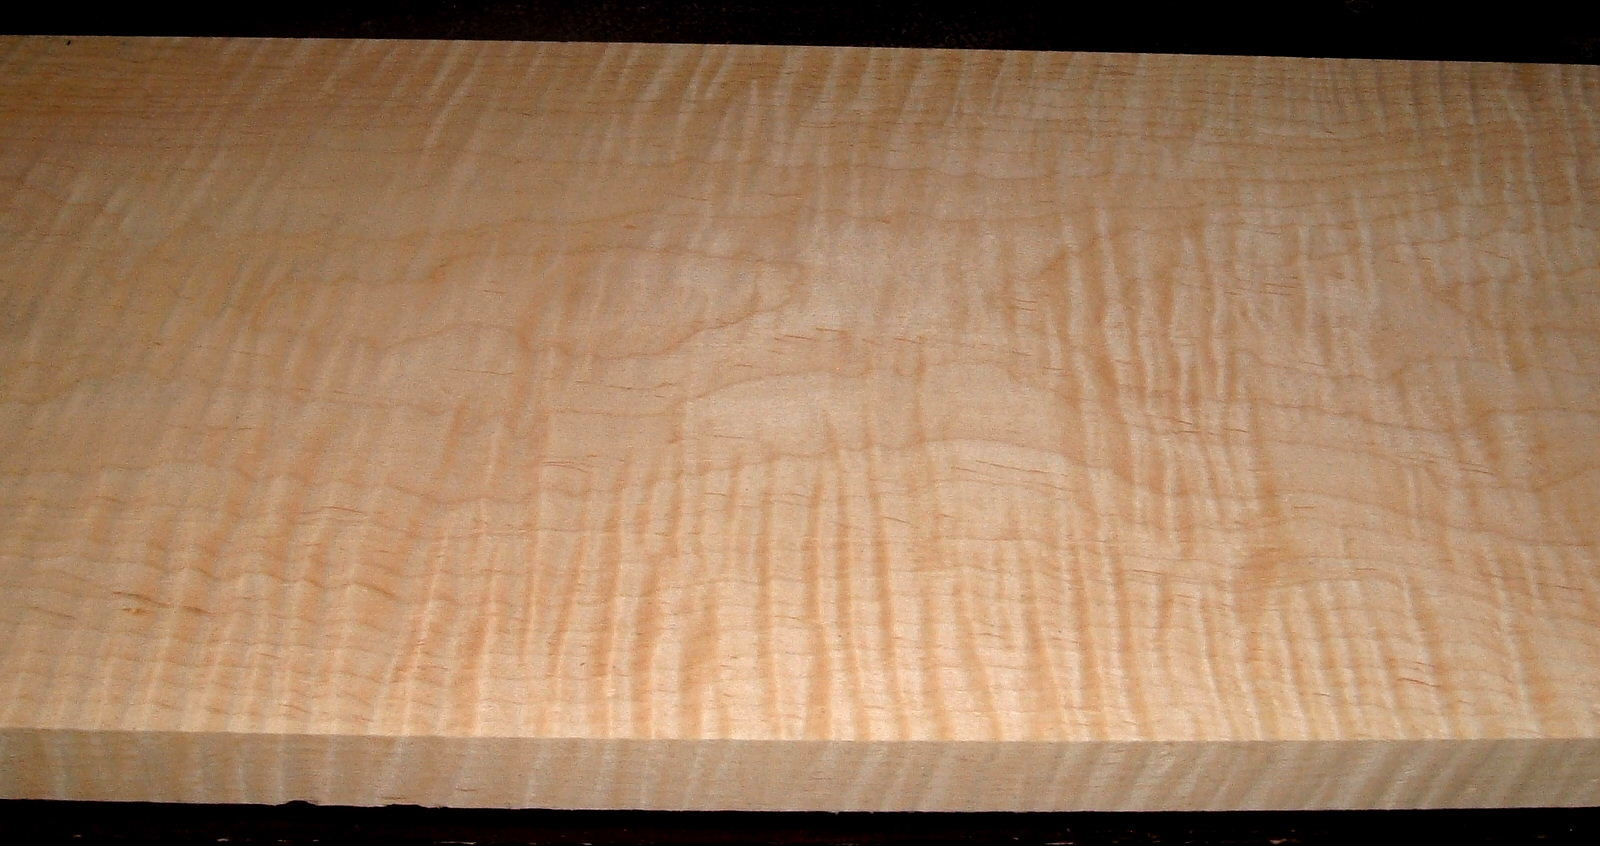 M2102-131, 1-1/16x11x44, Curly Tiger Maple